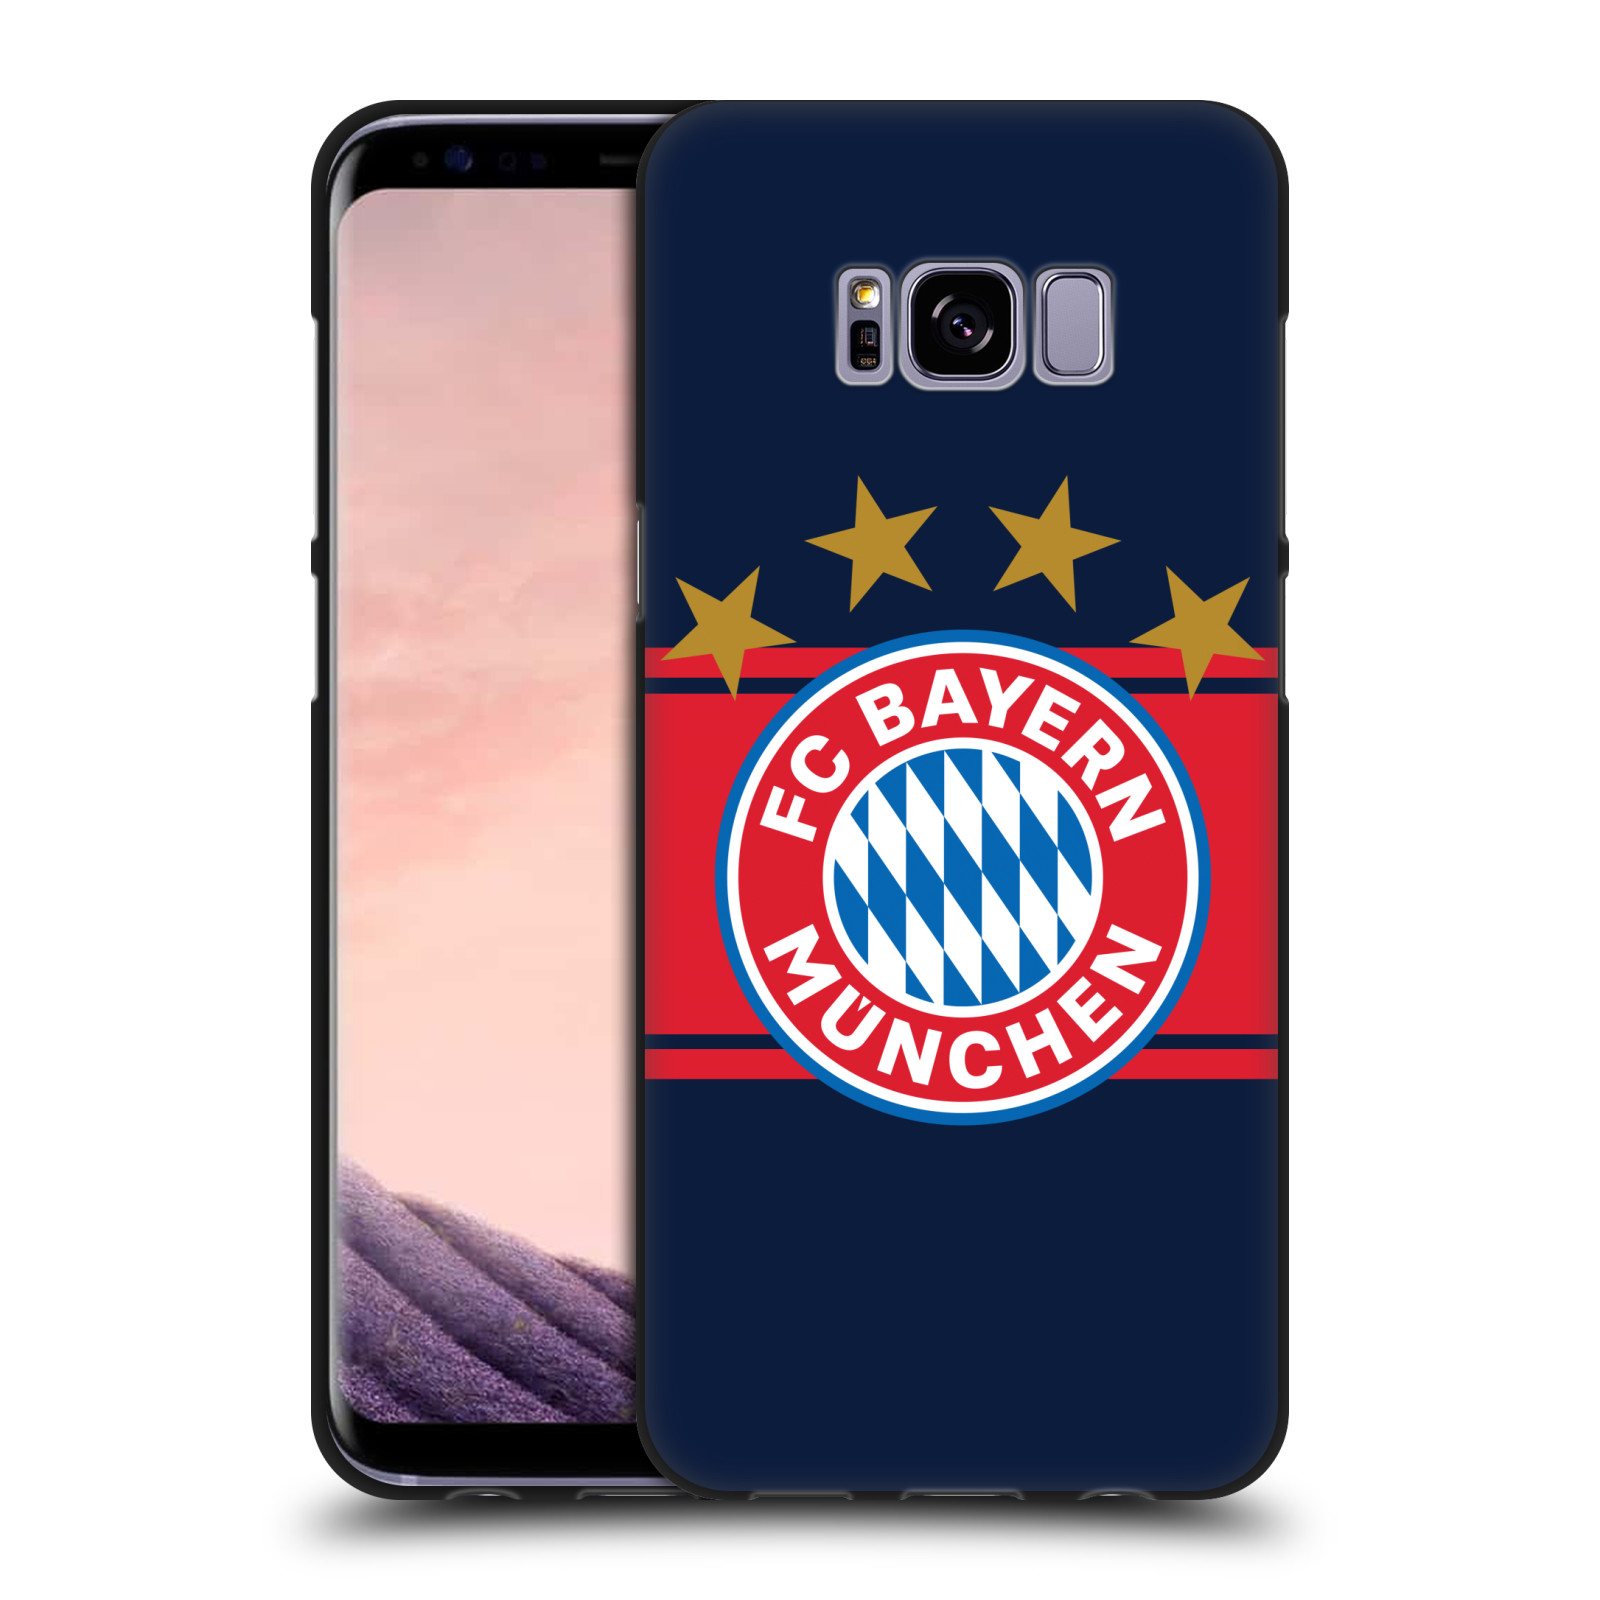 OFFICIAL-FC-BAYERN-MUNICH-2017-18-LOGO-KIT-BLACK-GEL-CASE-FOR-SAMSUNG-PHONES-1